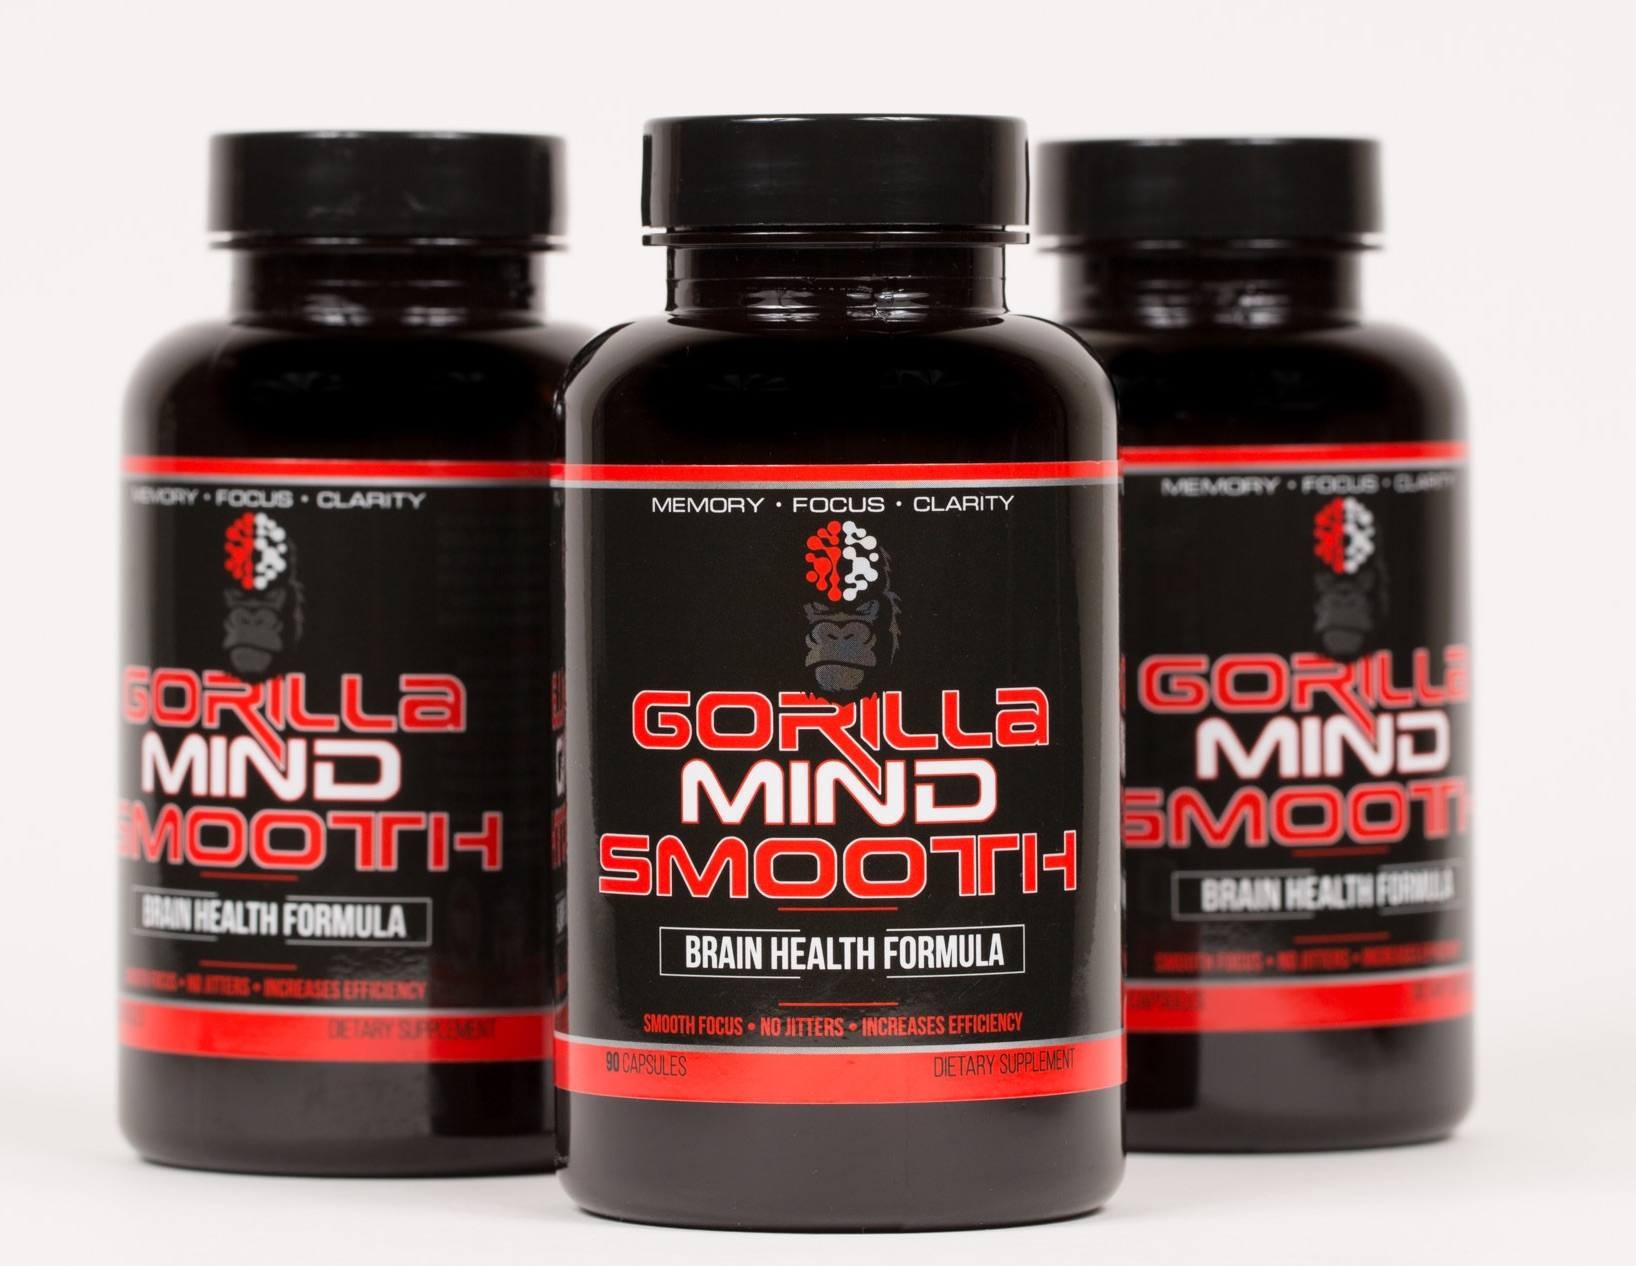 Gorilla Mind Smooth 3 Set JPG